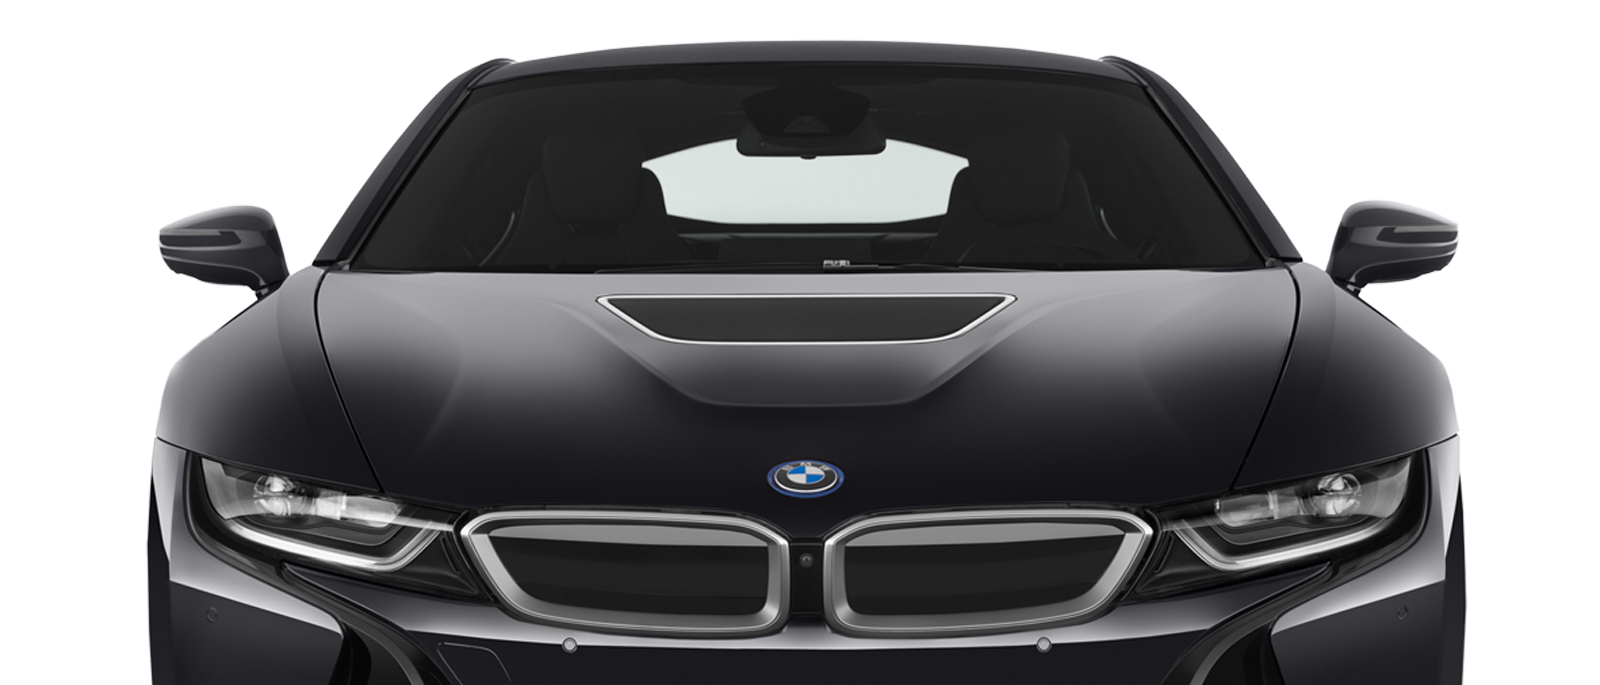 bmw i8 car rental exotic car collection by enterprise. Black Bedroom Furniture Sets. Home Design Ideas